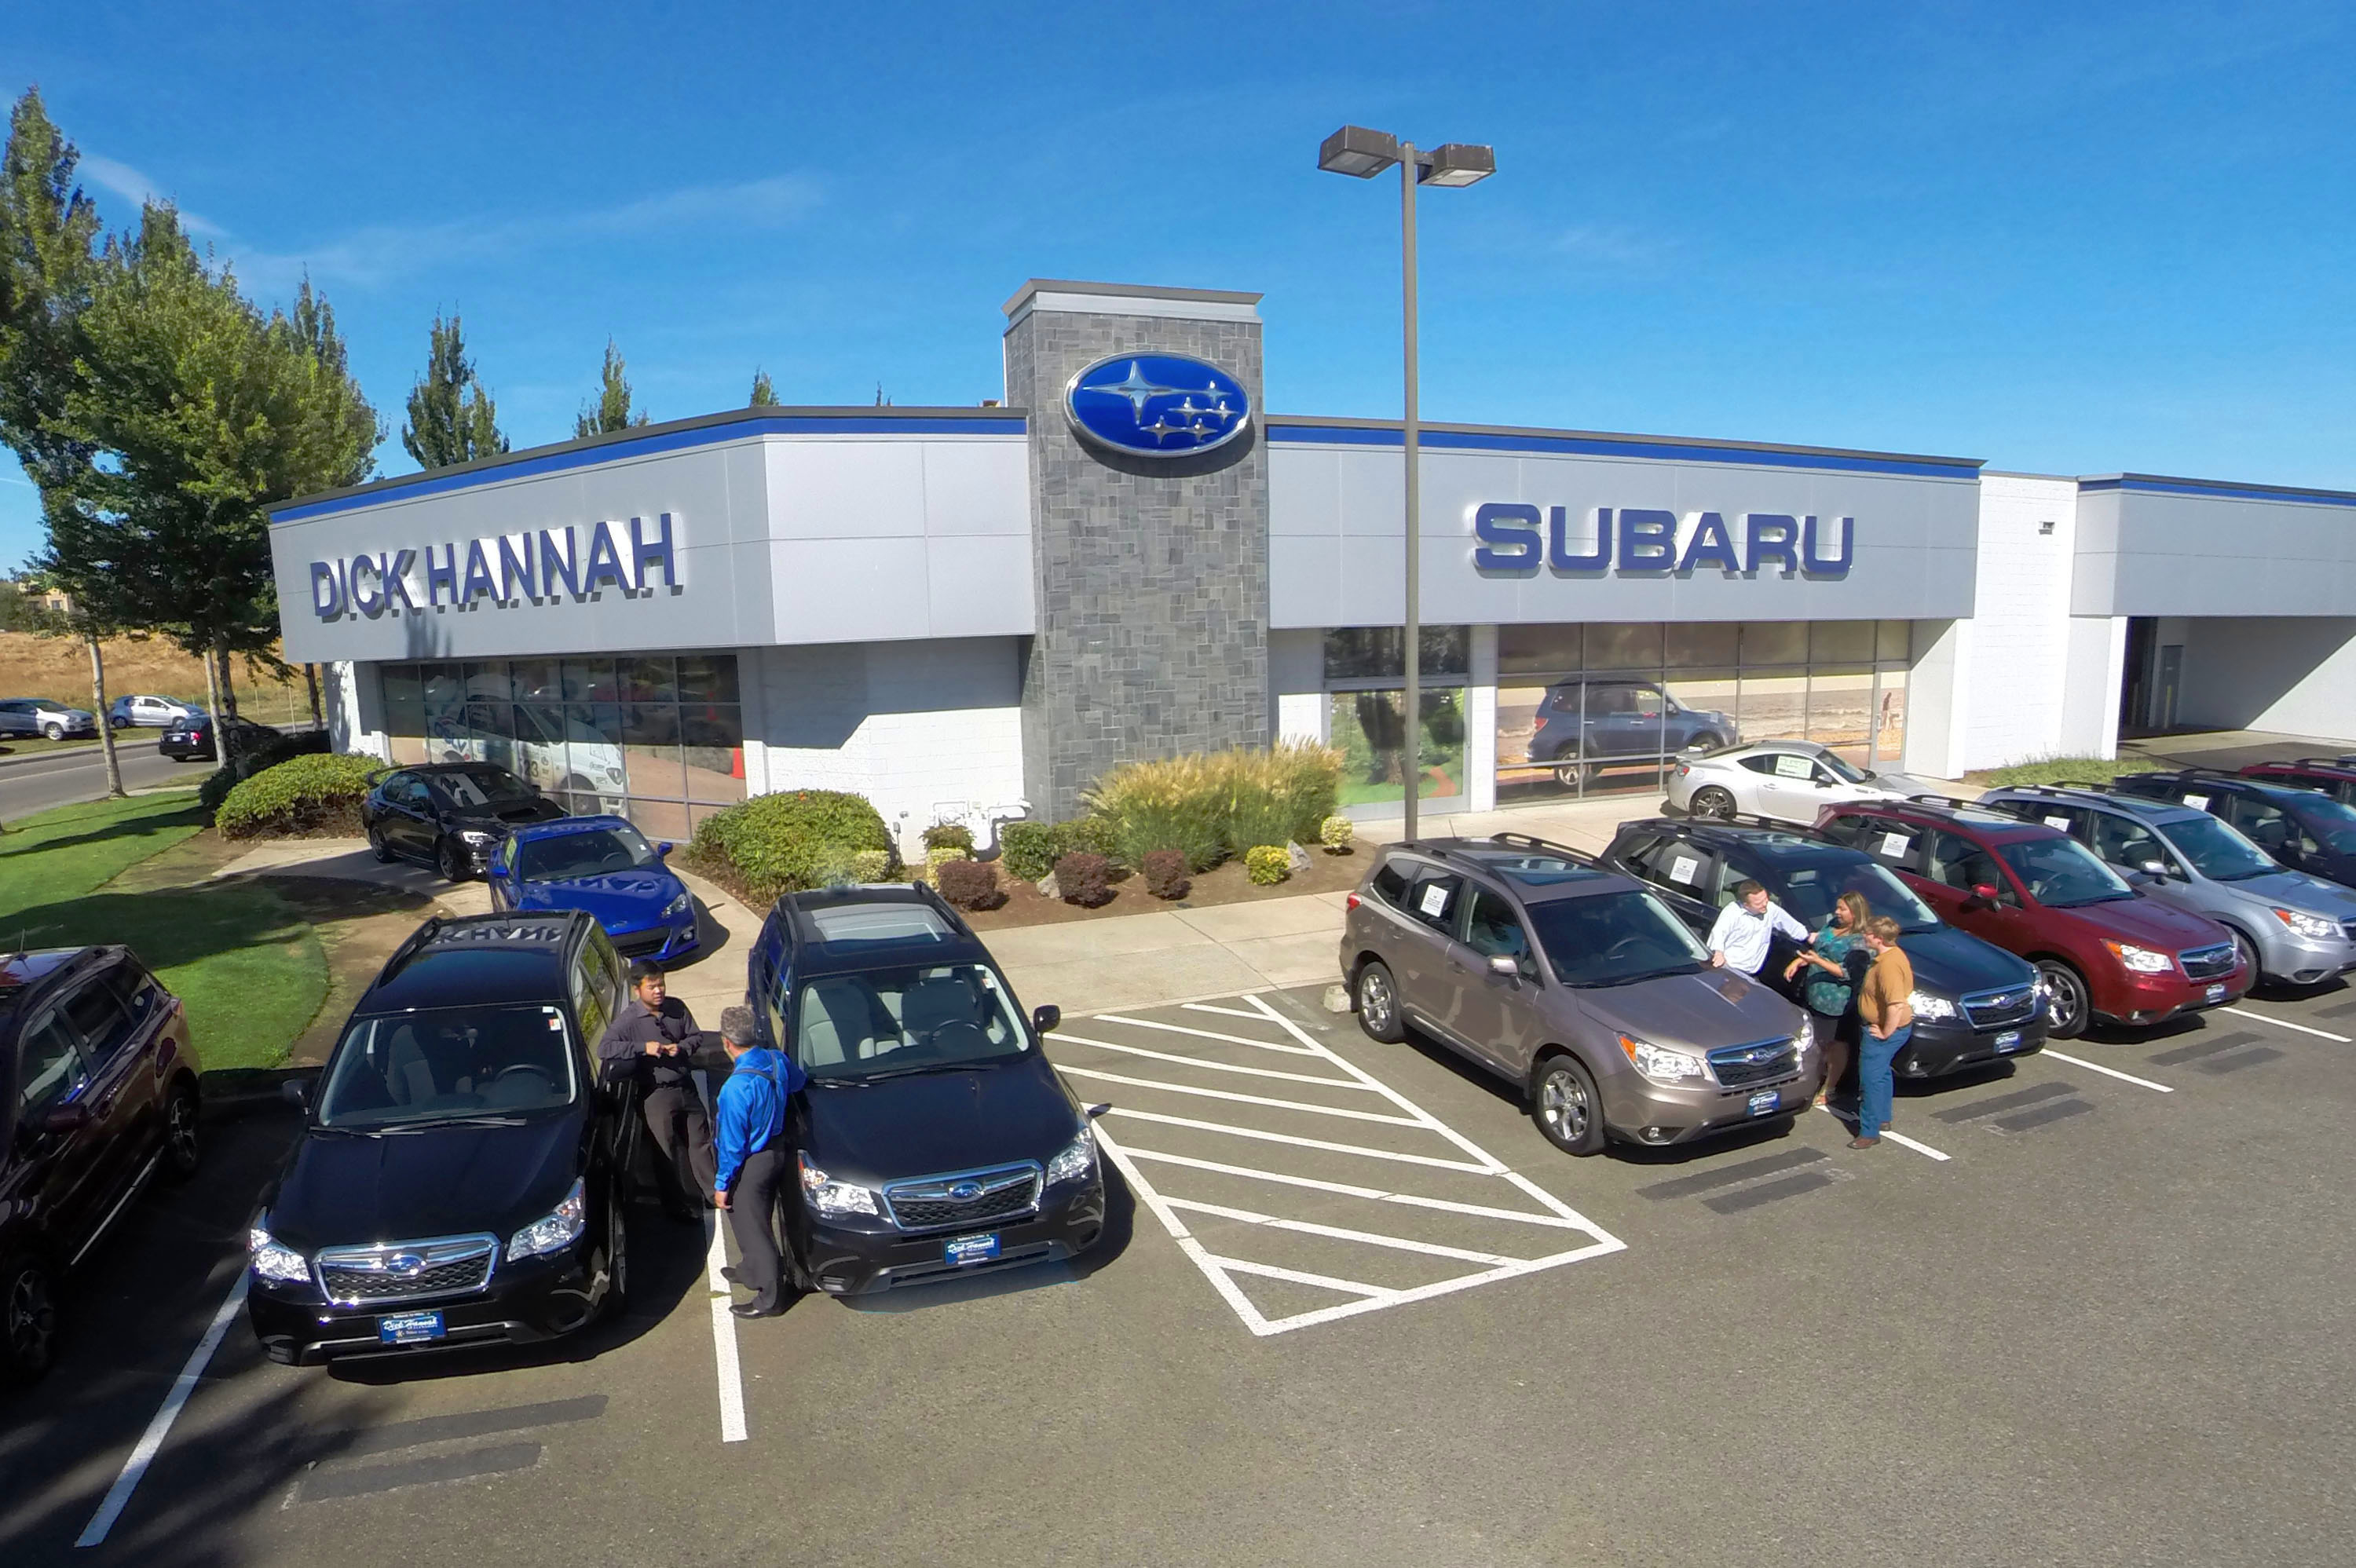 Used Subaru San Francisco >> Dick Hannah Subaru Coupons Vancouver. Coupons near me app for iphone and android | 8coupons